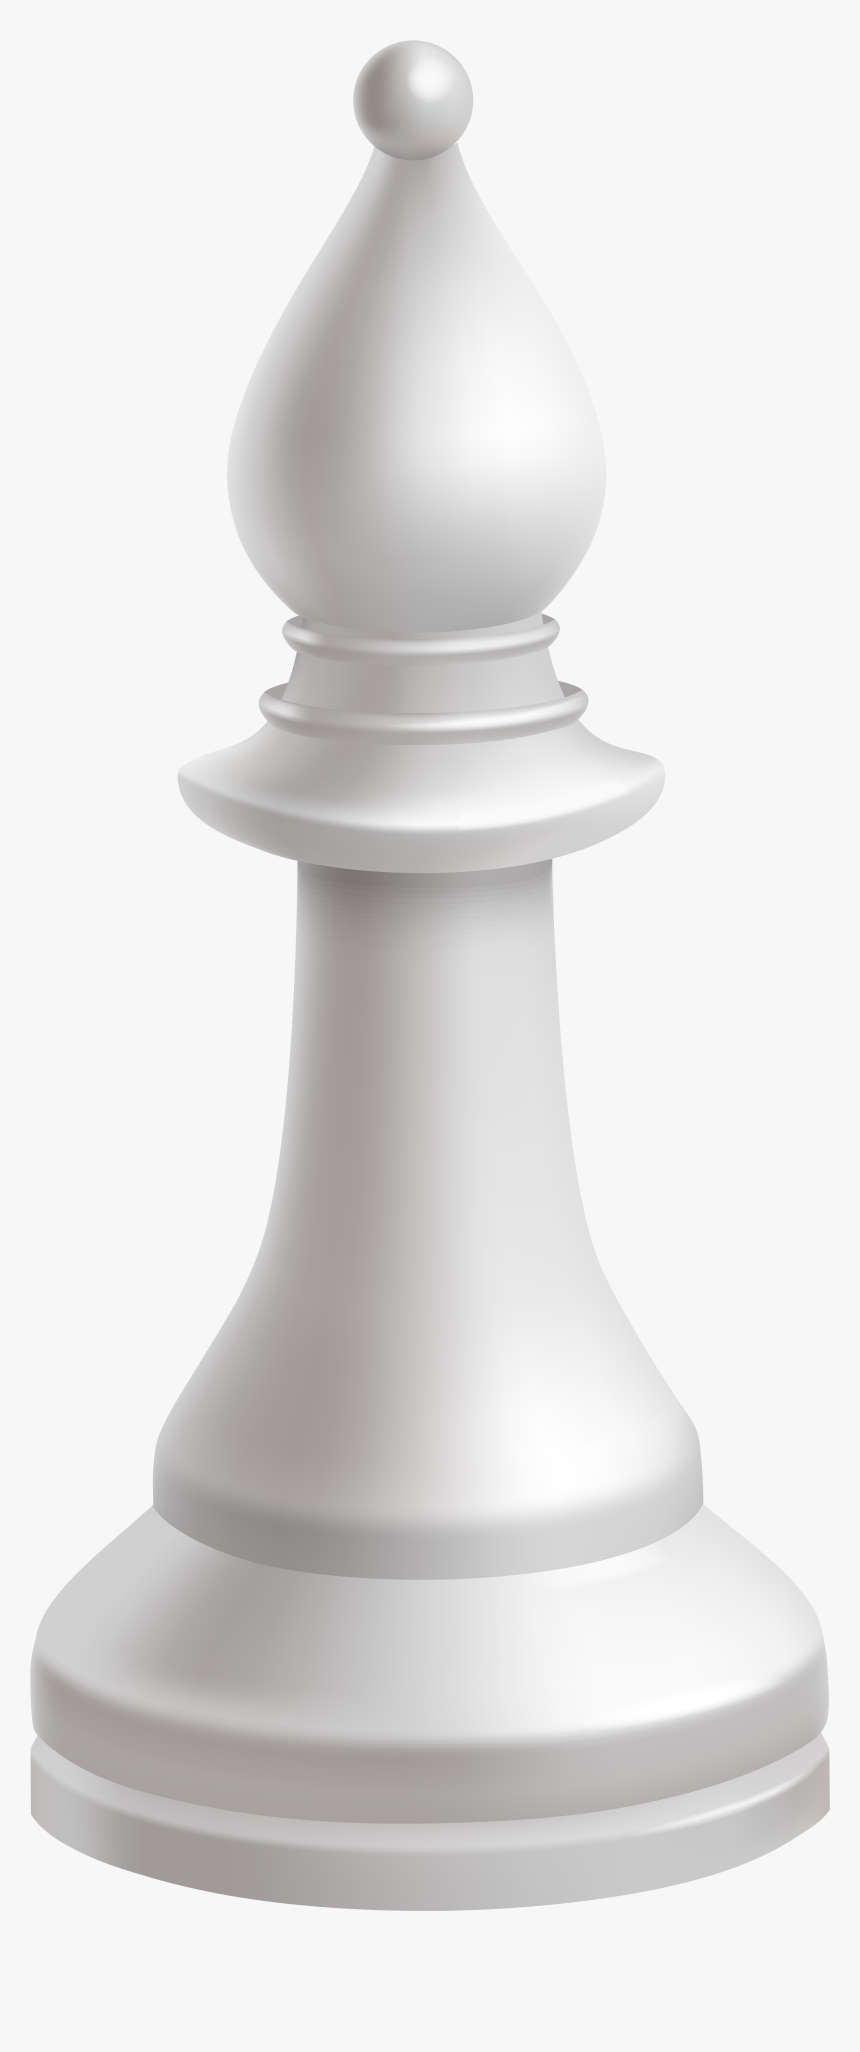 Transparent Board Games Clipart - Chess Piece King Png, Png Download, Free Download